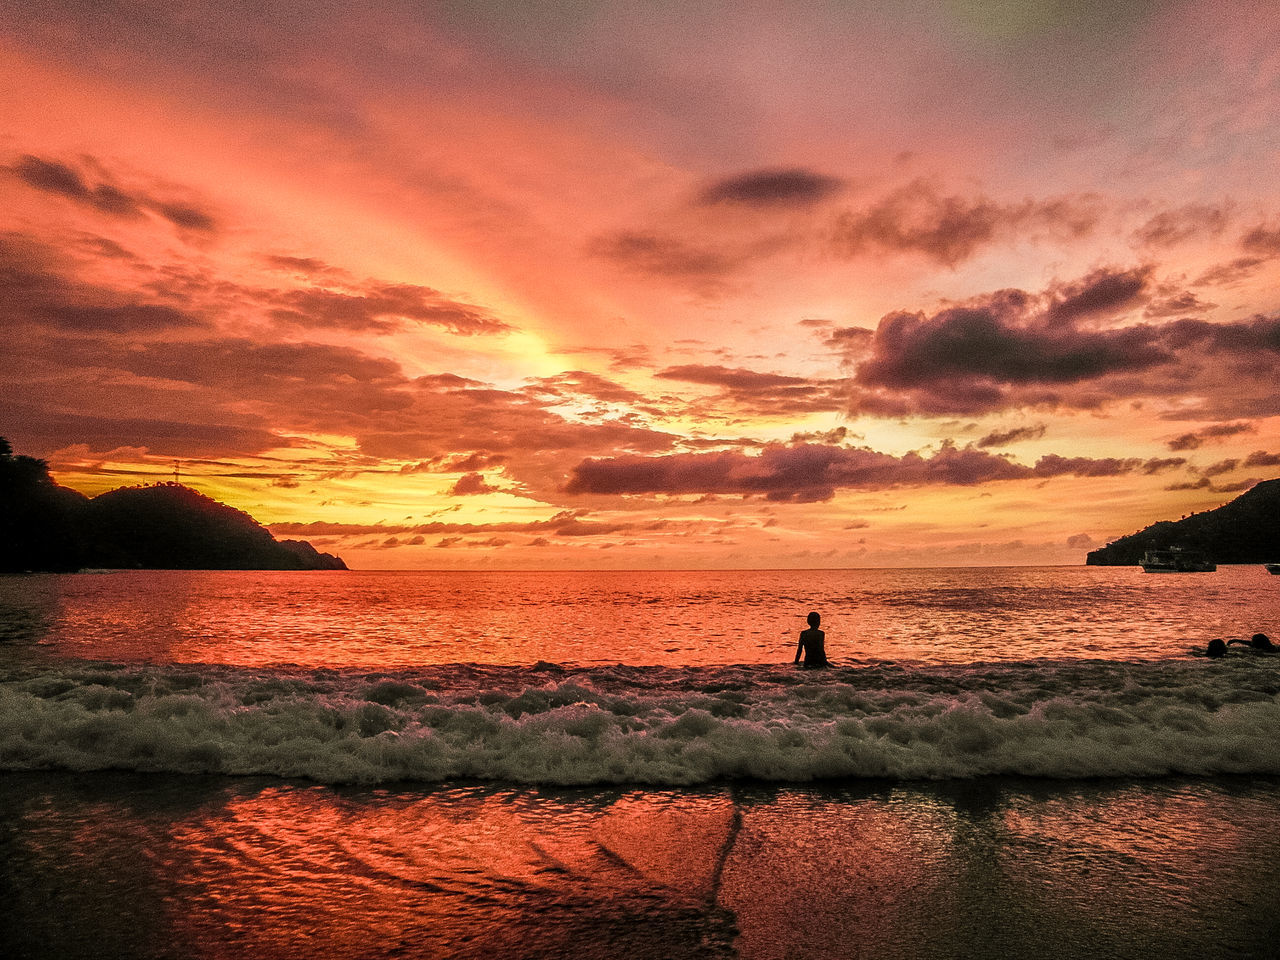 Young boy in the water during sunset at the beach Beach Beauty In Nature Boy Cloud - Sky Colombia Horizon Over Water Nature Sand Scenics Sea Silhouette Sky Sunset Tranquility Travel Travel Destinations Vacations Water